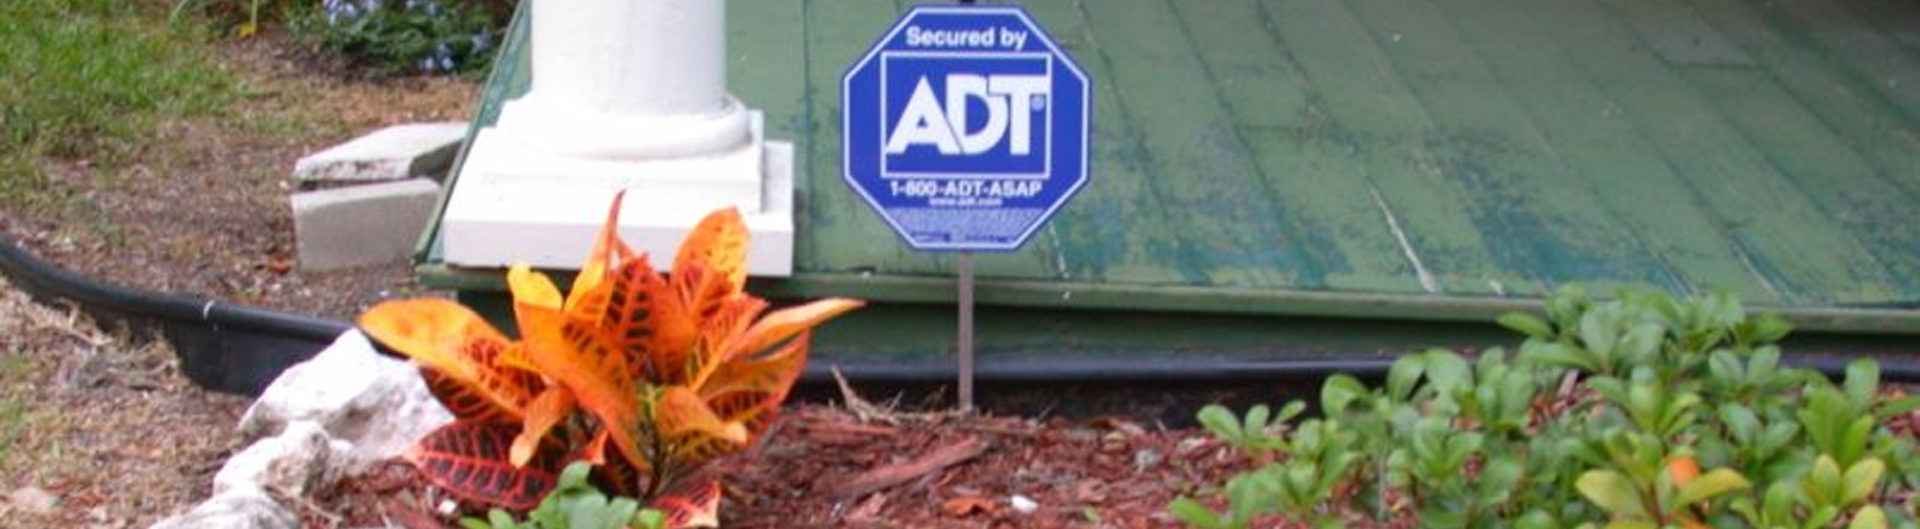 ADT Pulse Vulnerability Allowed Third Parties to Remotely